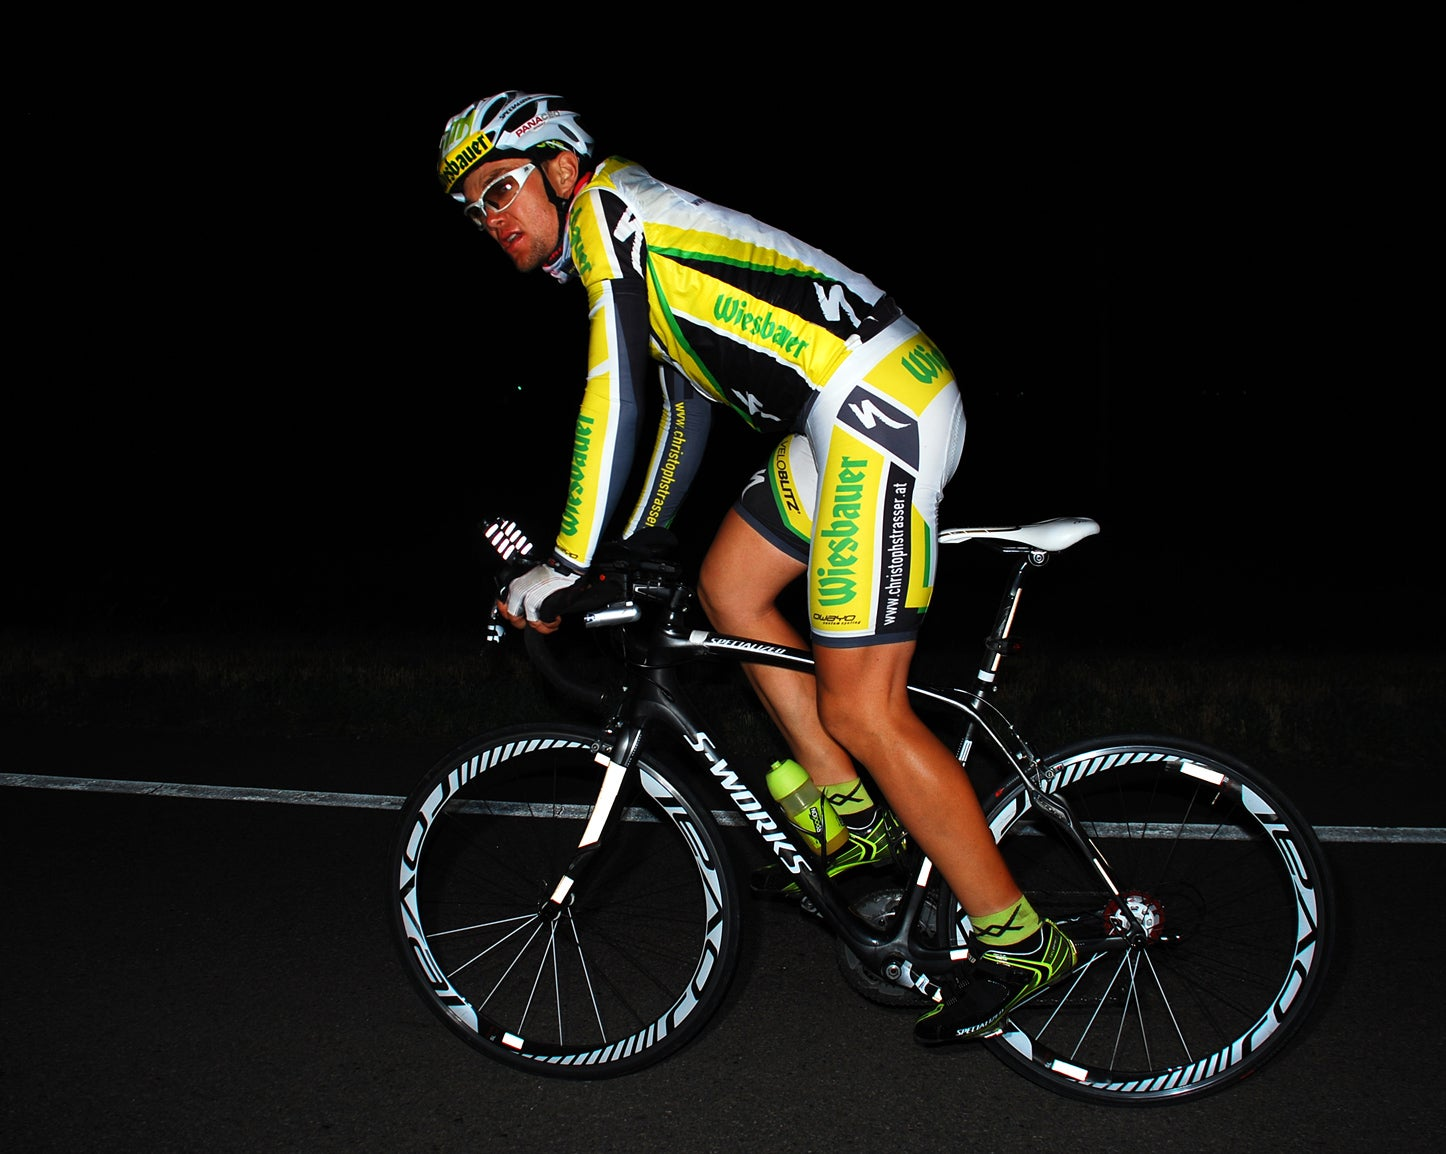 2011 Race Across America. Christoph Strasser continues to hold the lead and an incredible pace of 15.94 mph. No one in years (if ever) has kept this close to the long-standing completed RAAM speed record of 15.4mph set by Pete Penseyres back in 1986. Photo: Vic Armijo